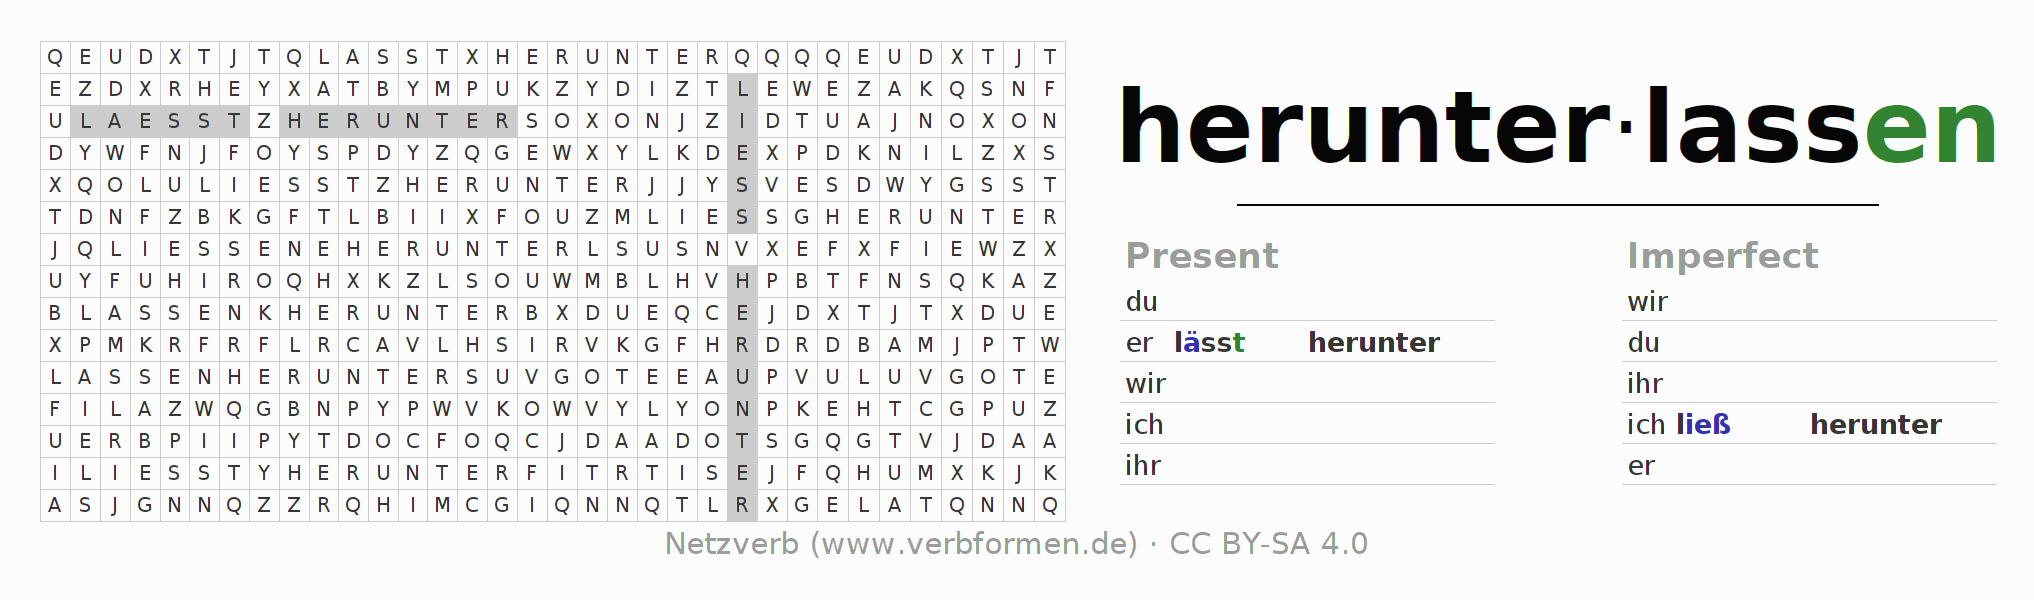 Word search puzzle for the conjugation of the verb herunterlassen